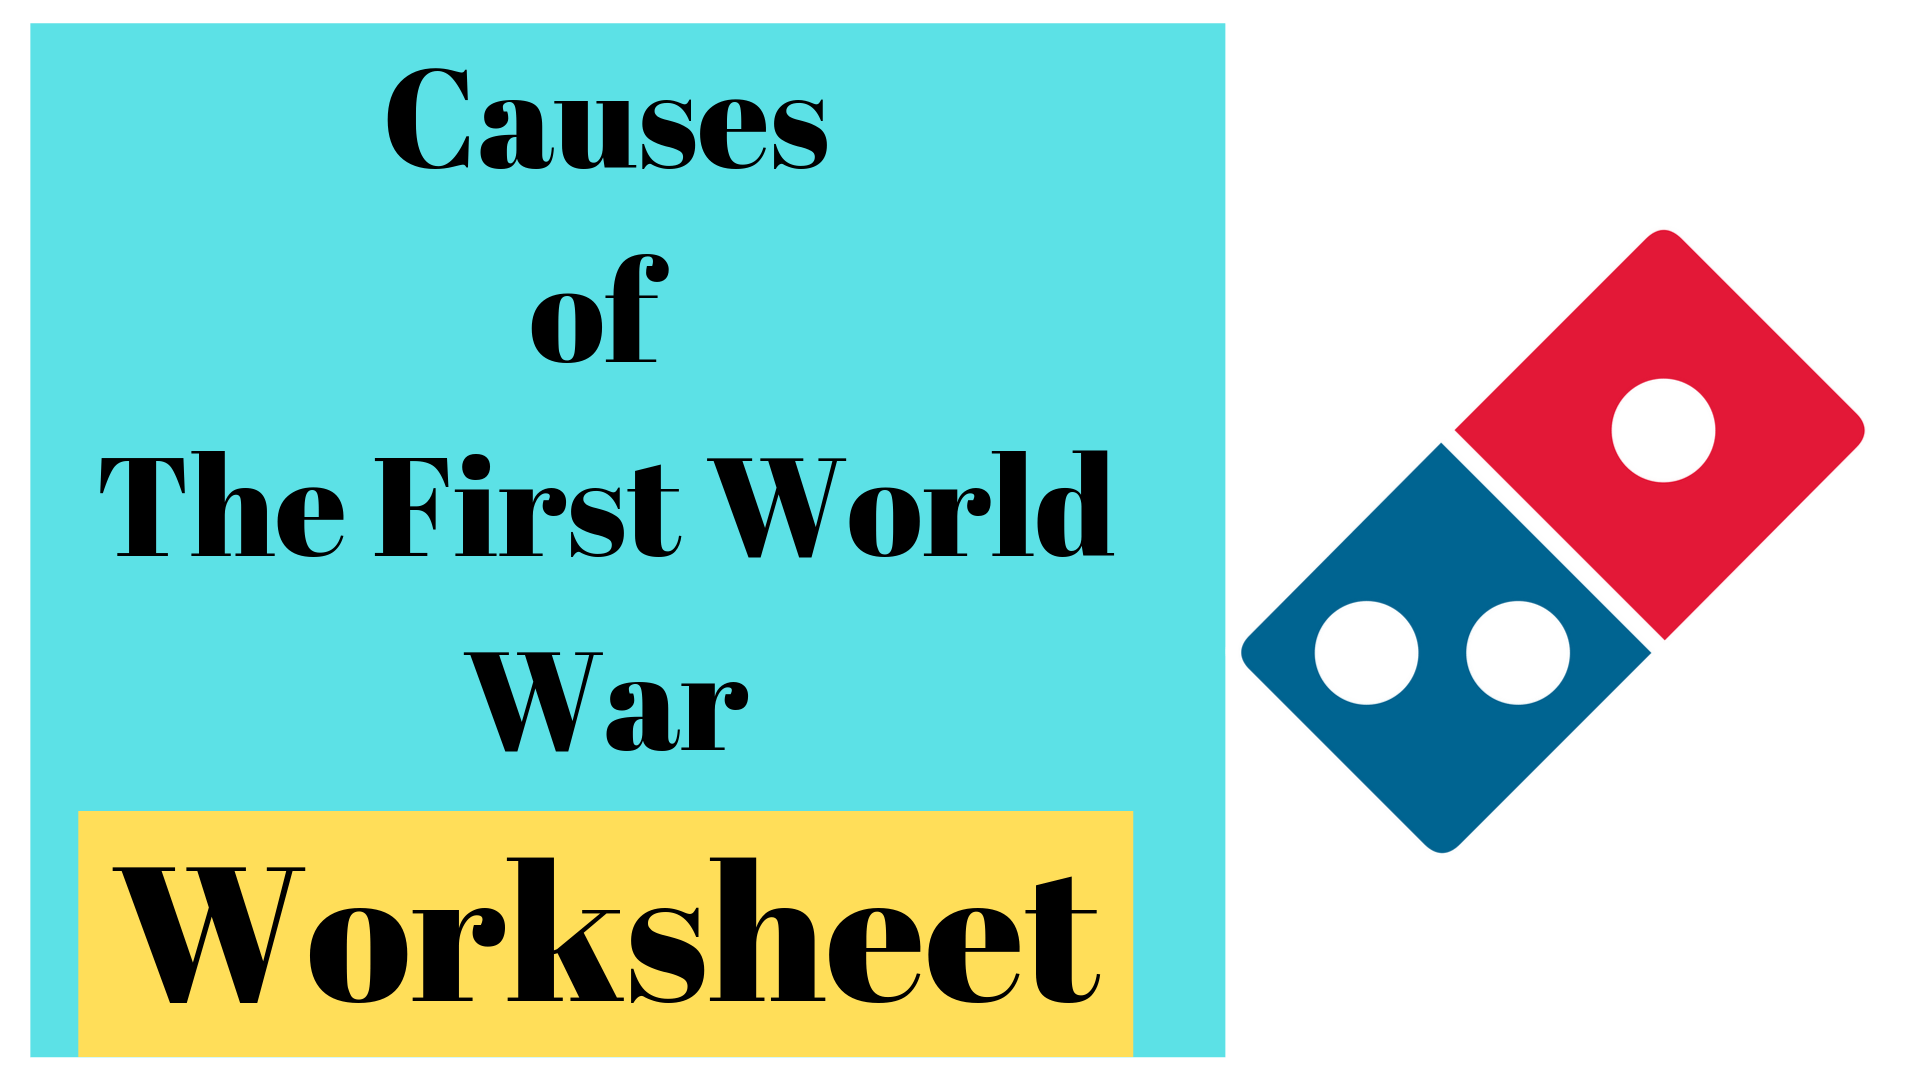 Causes Of The First World War Worksheet